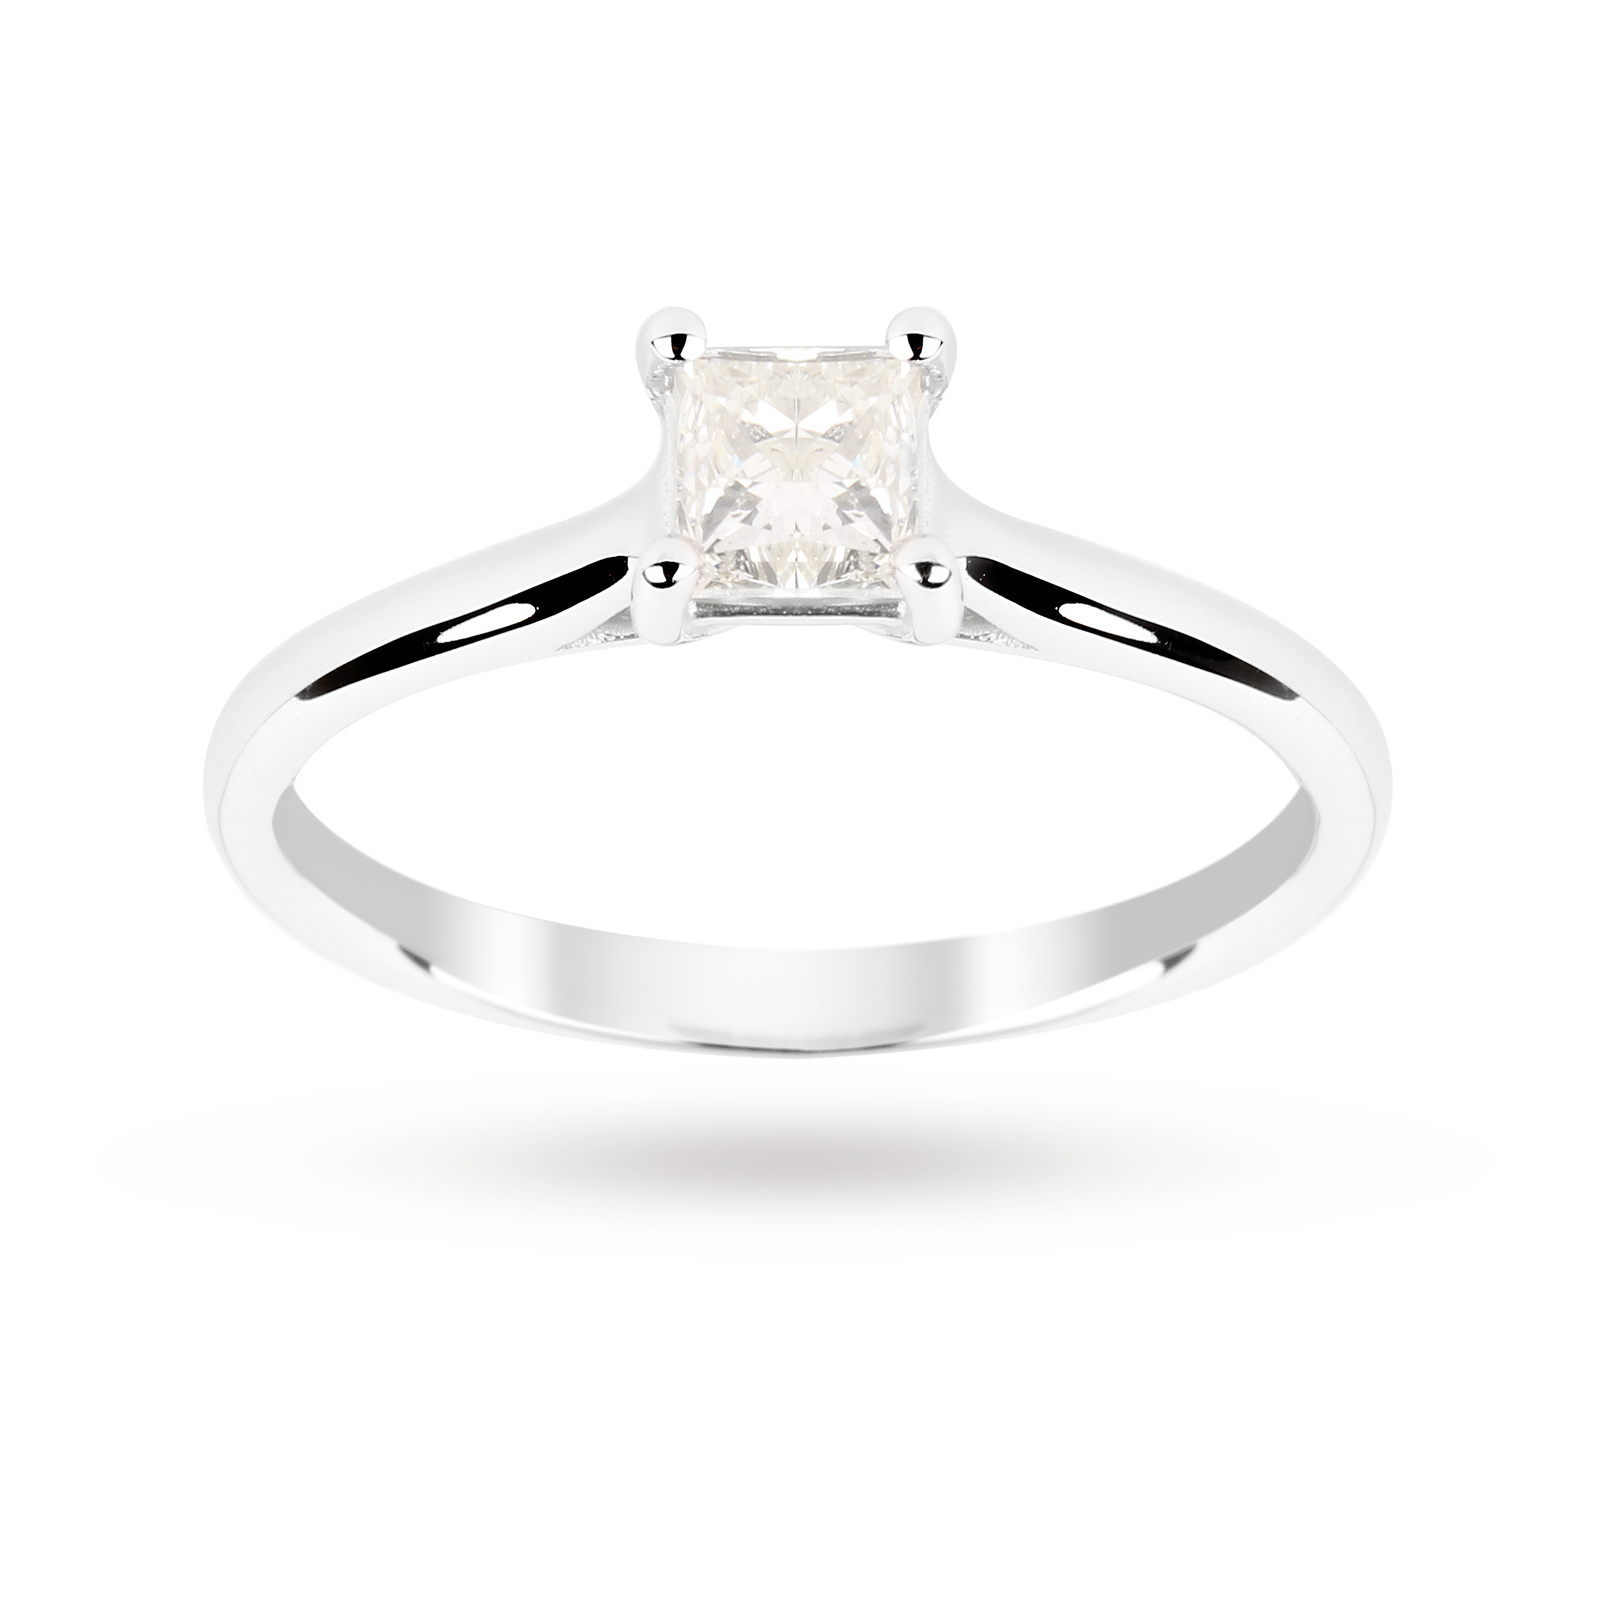 Princess Cut 0.50 Carat 4 Claw Diamond  Solitaire Ring in 18 Carat White Gold